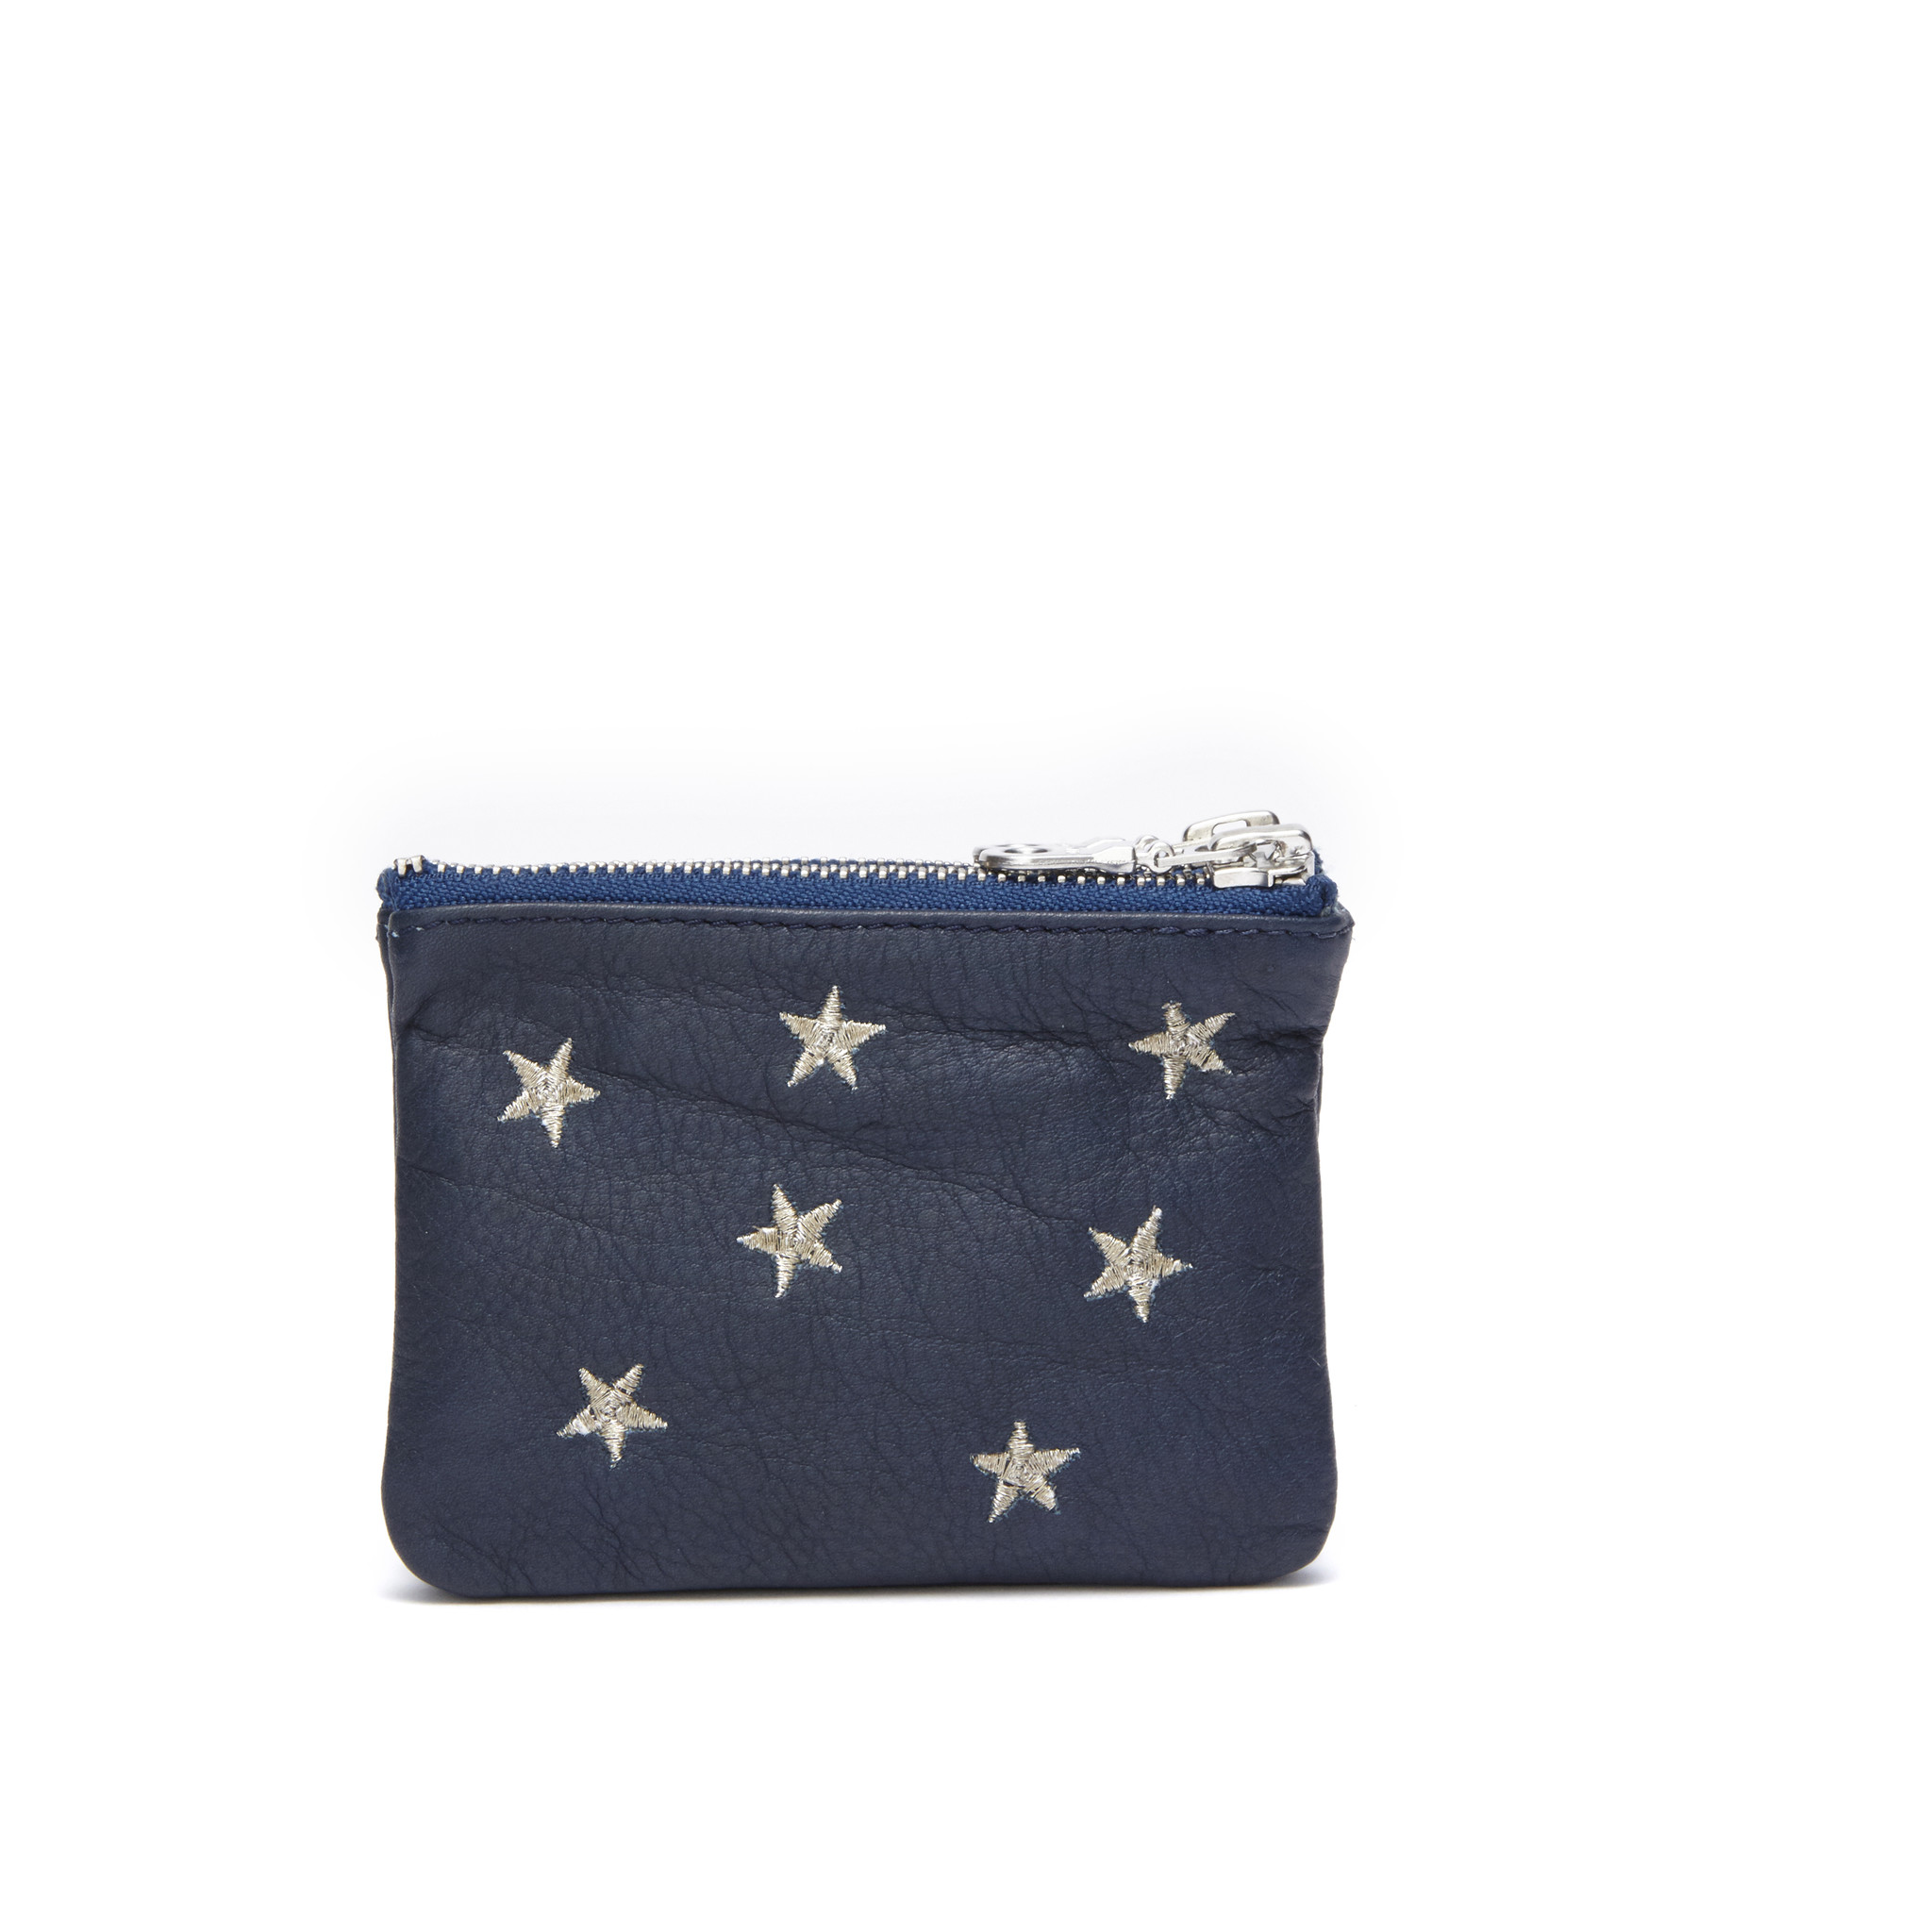 FABIENNE CHAPOT SOFIA PURSE NAVY/SILVER EMBROIDERY